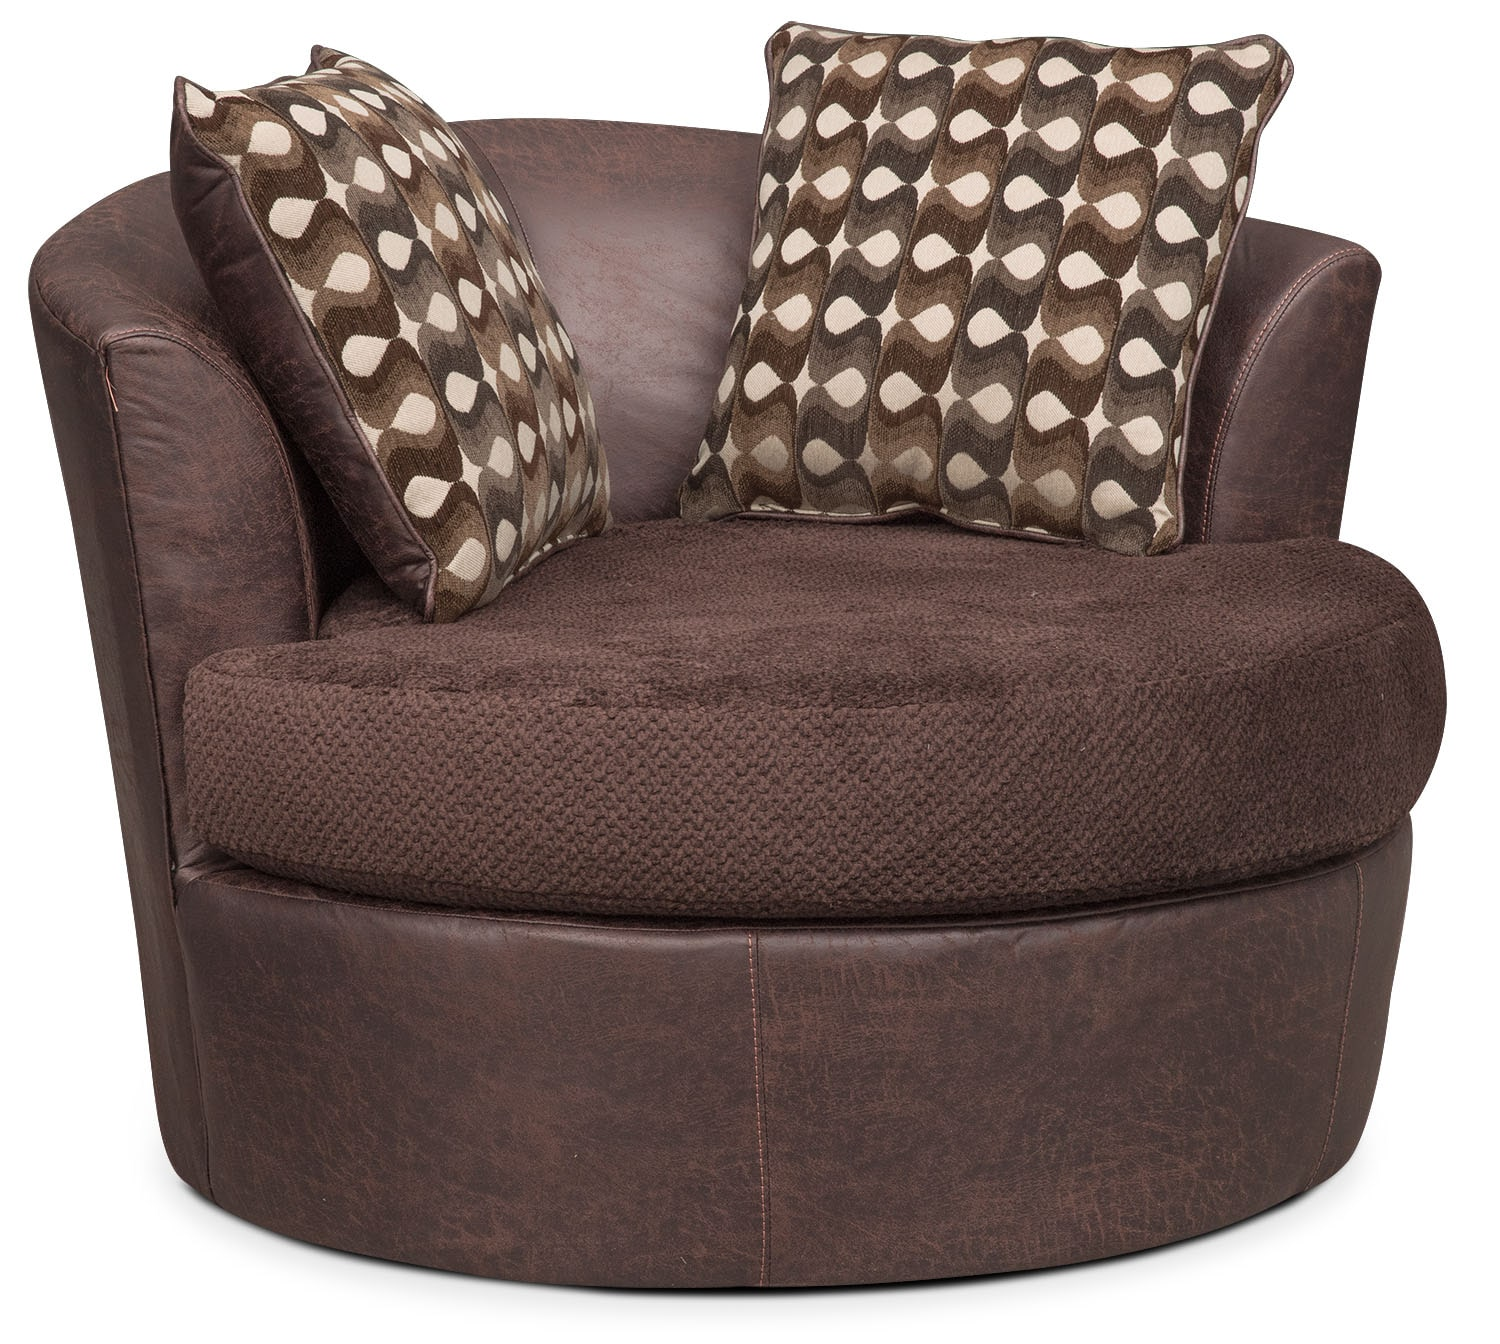 swivel chair value city student desk and brando sofa with chaise set chocolate